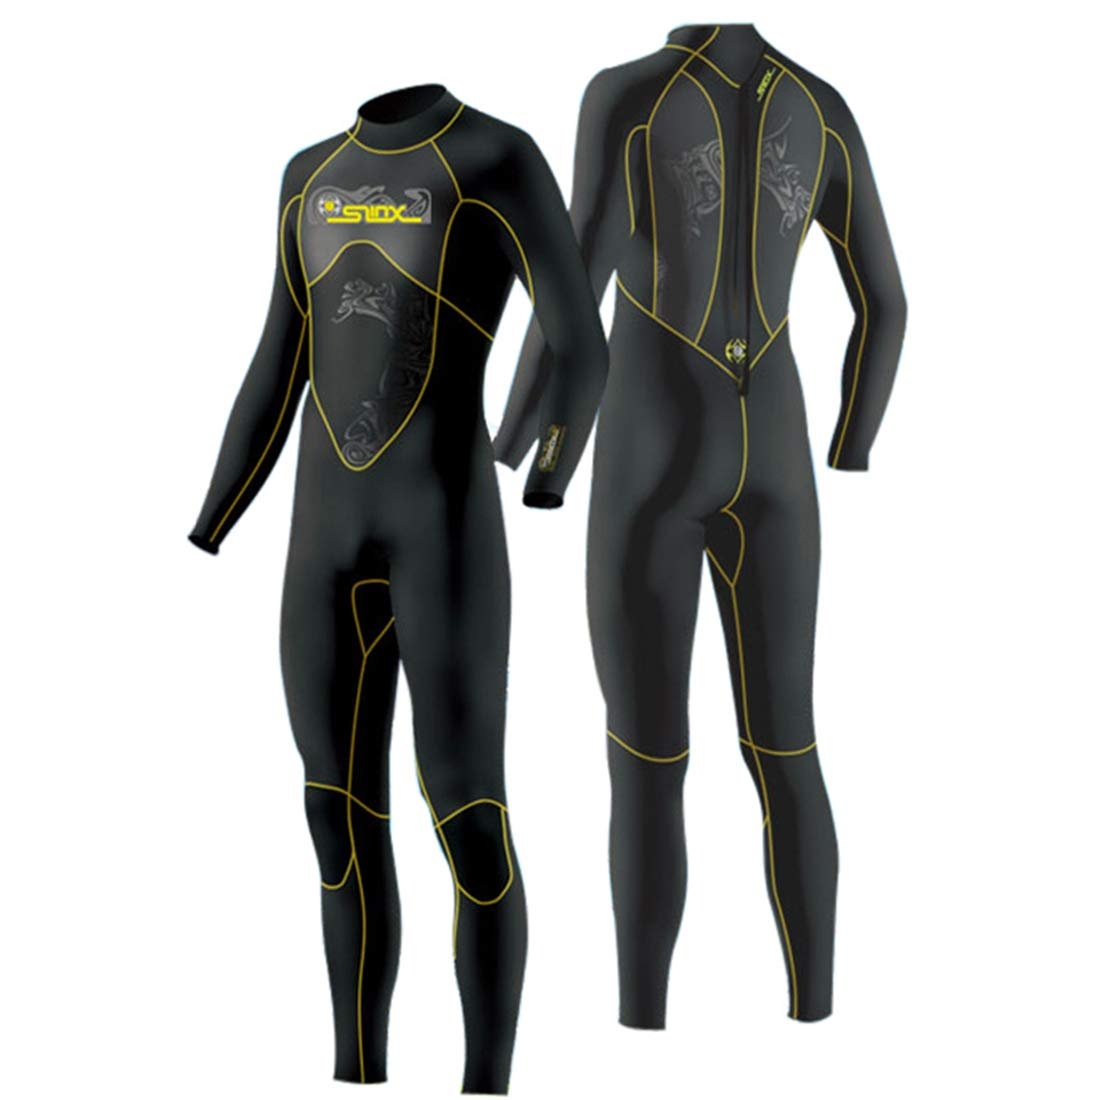 Large JASQSY Scuba Diving Wetsuit Men 3mm Diving Suit Neoprene Swimming Wetsuit Surf Triathlon Wet Suit Swimsuit Full Bodysuit,L